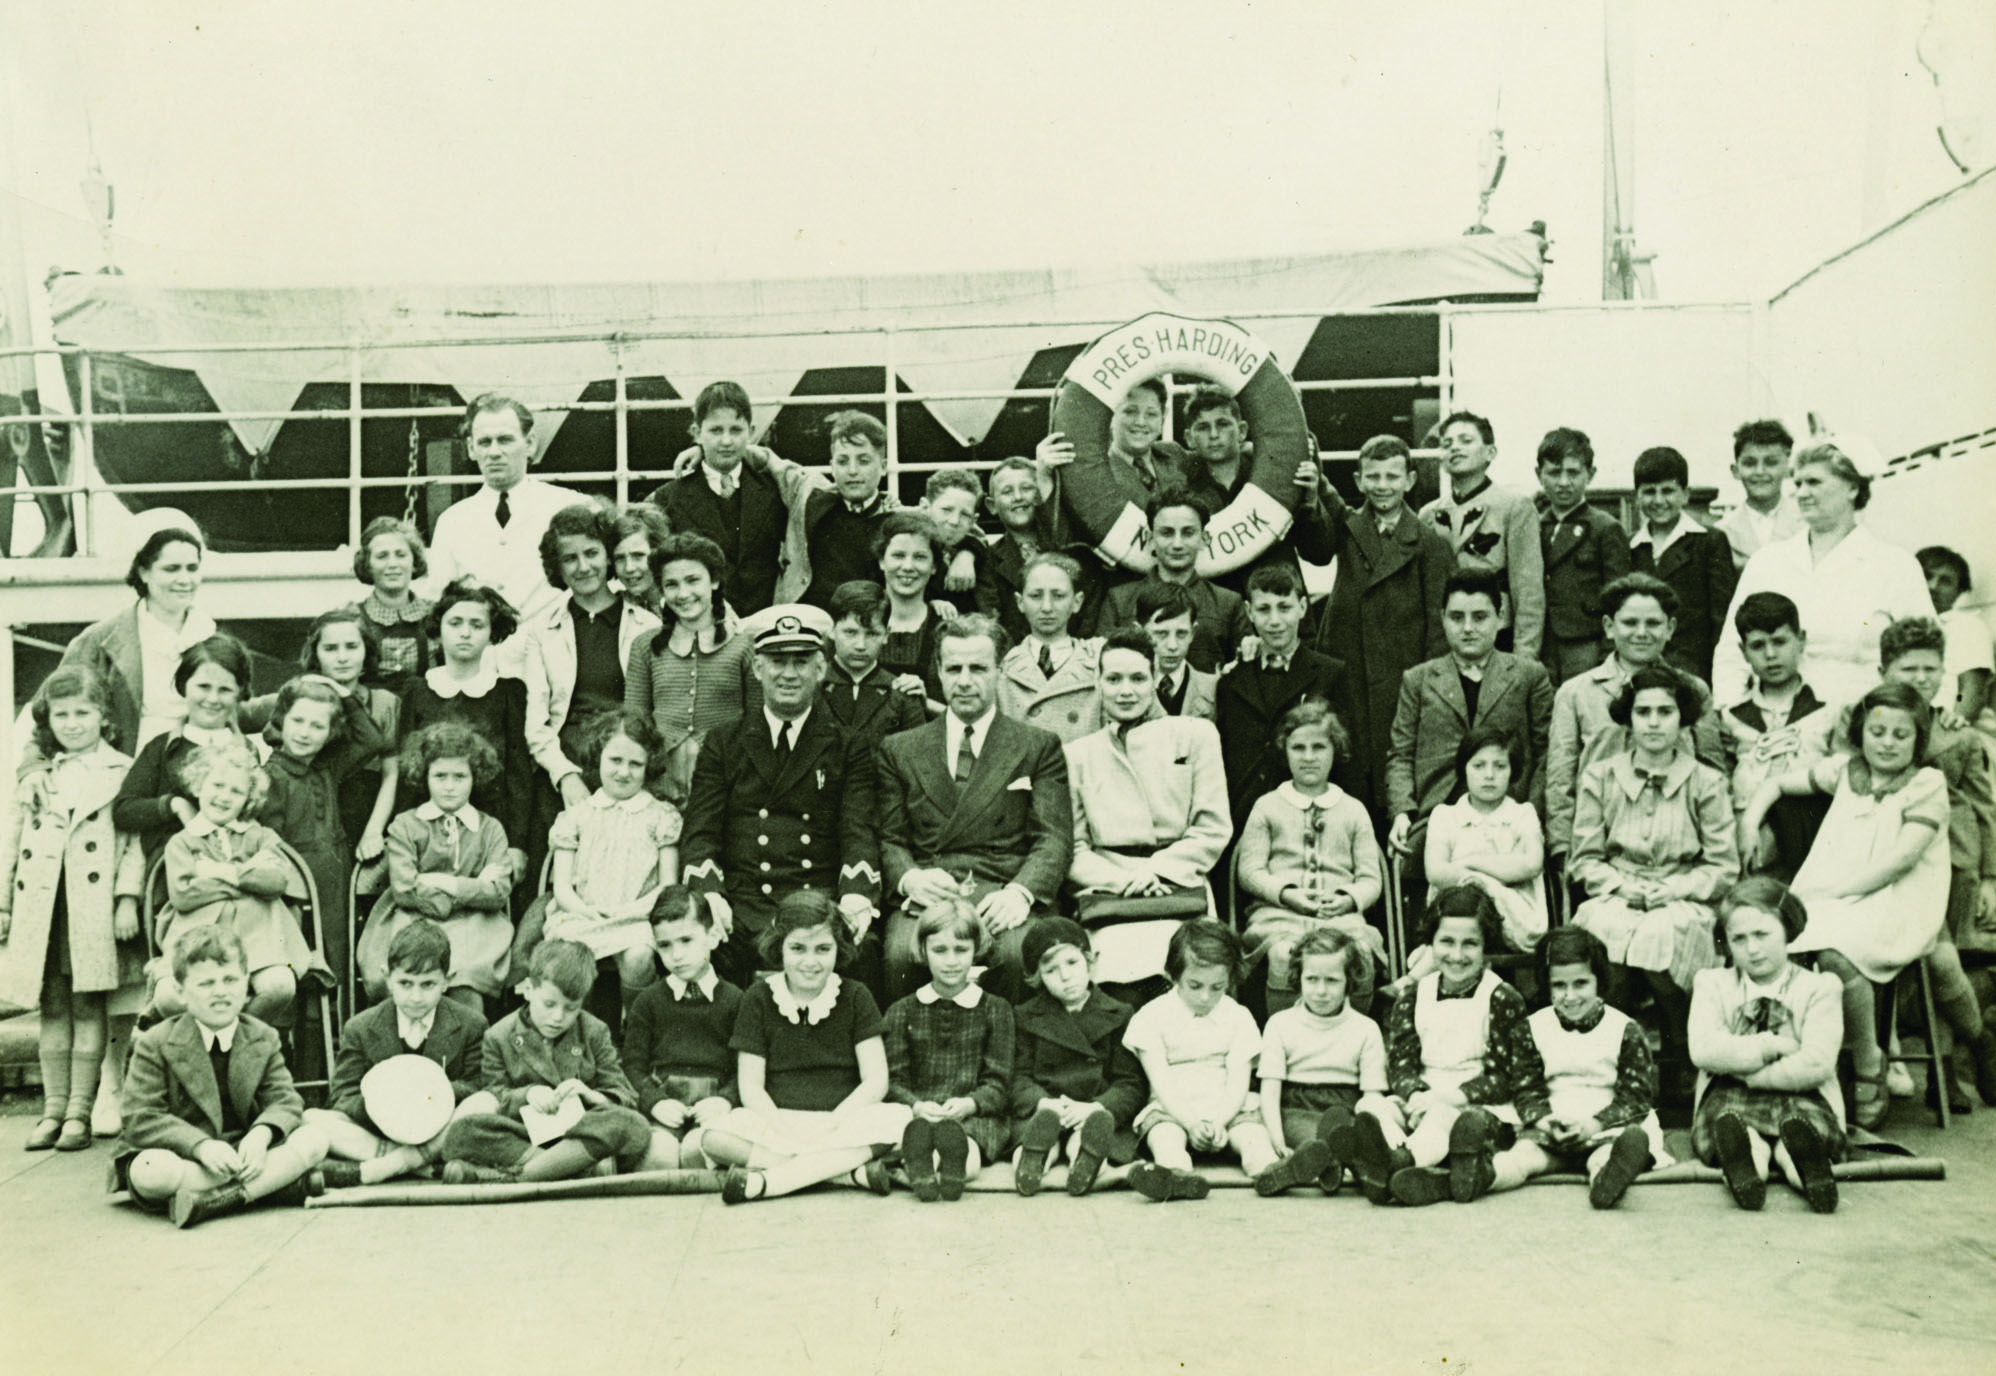 Gilbert and Eleanor Kraus pose with the rescued children on the SS President Harding, 1939. Courtesy of PerlePress Productions